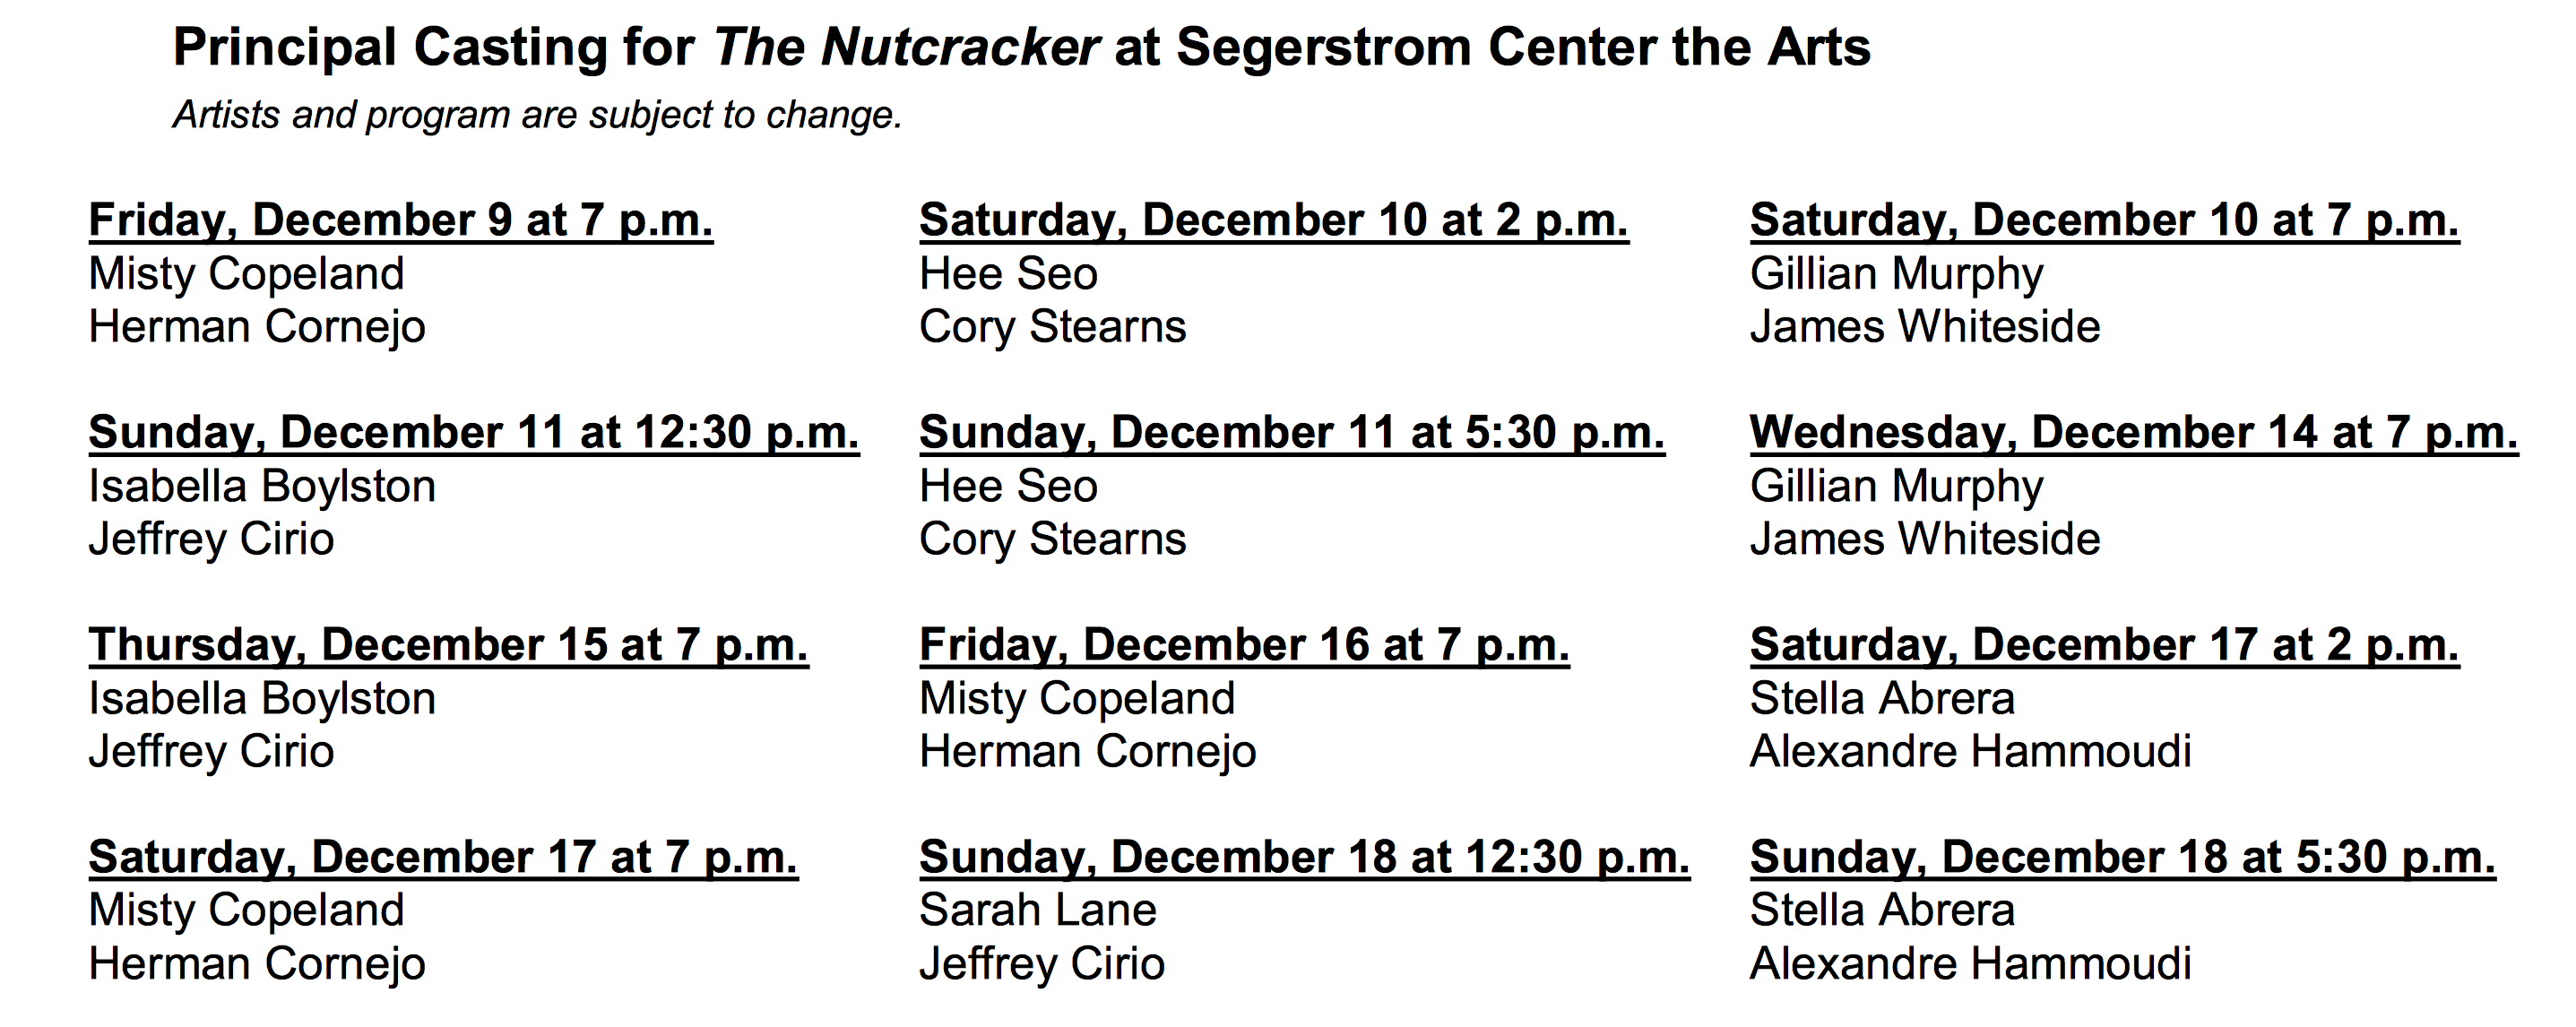 The Nutcracker dancers at Segerstrom Center